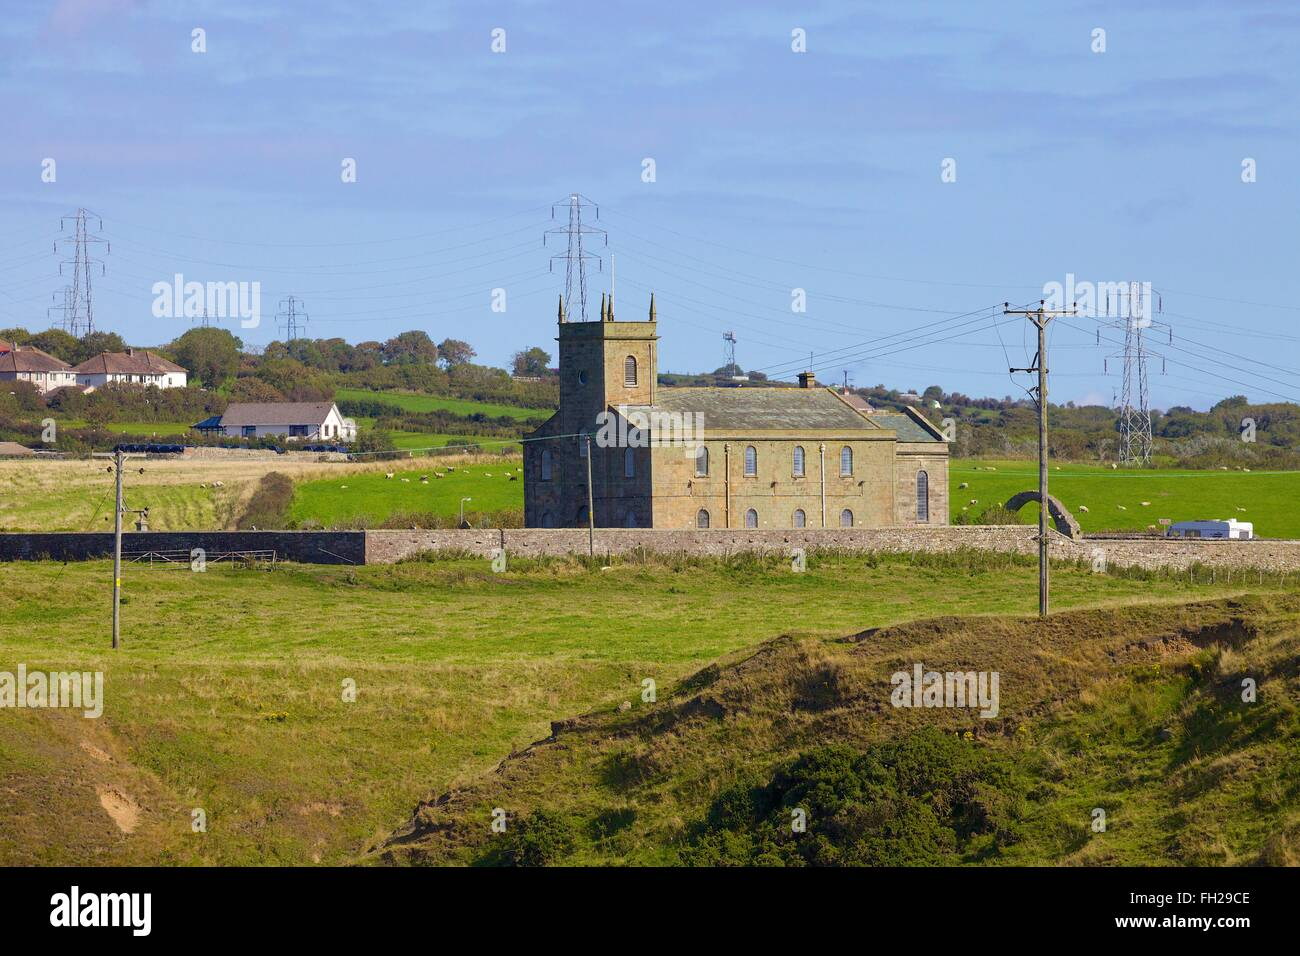 St Bridget's Church, Moresby. Between Parton & Lowca, Whitehaven, Cumbria, England, United Kingdom. - Stock Image